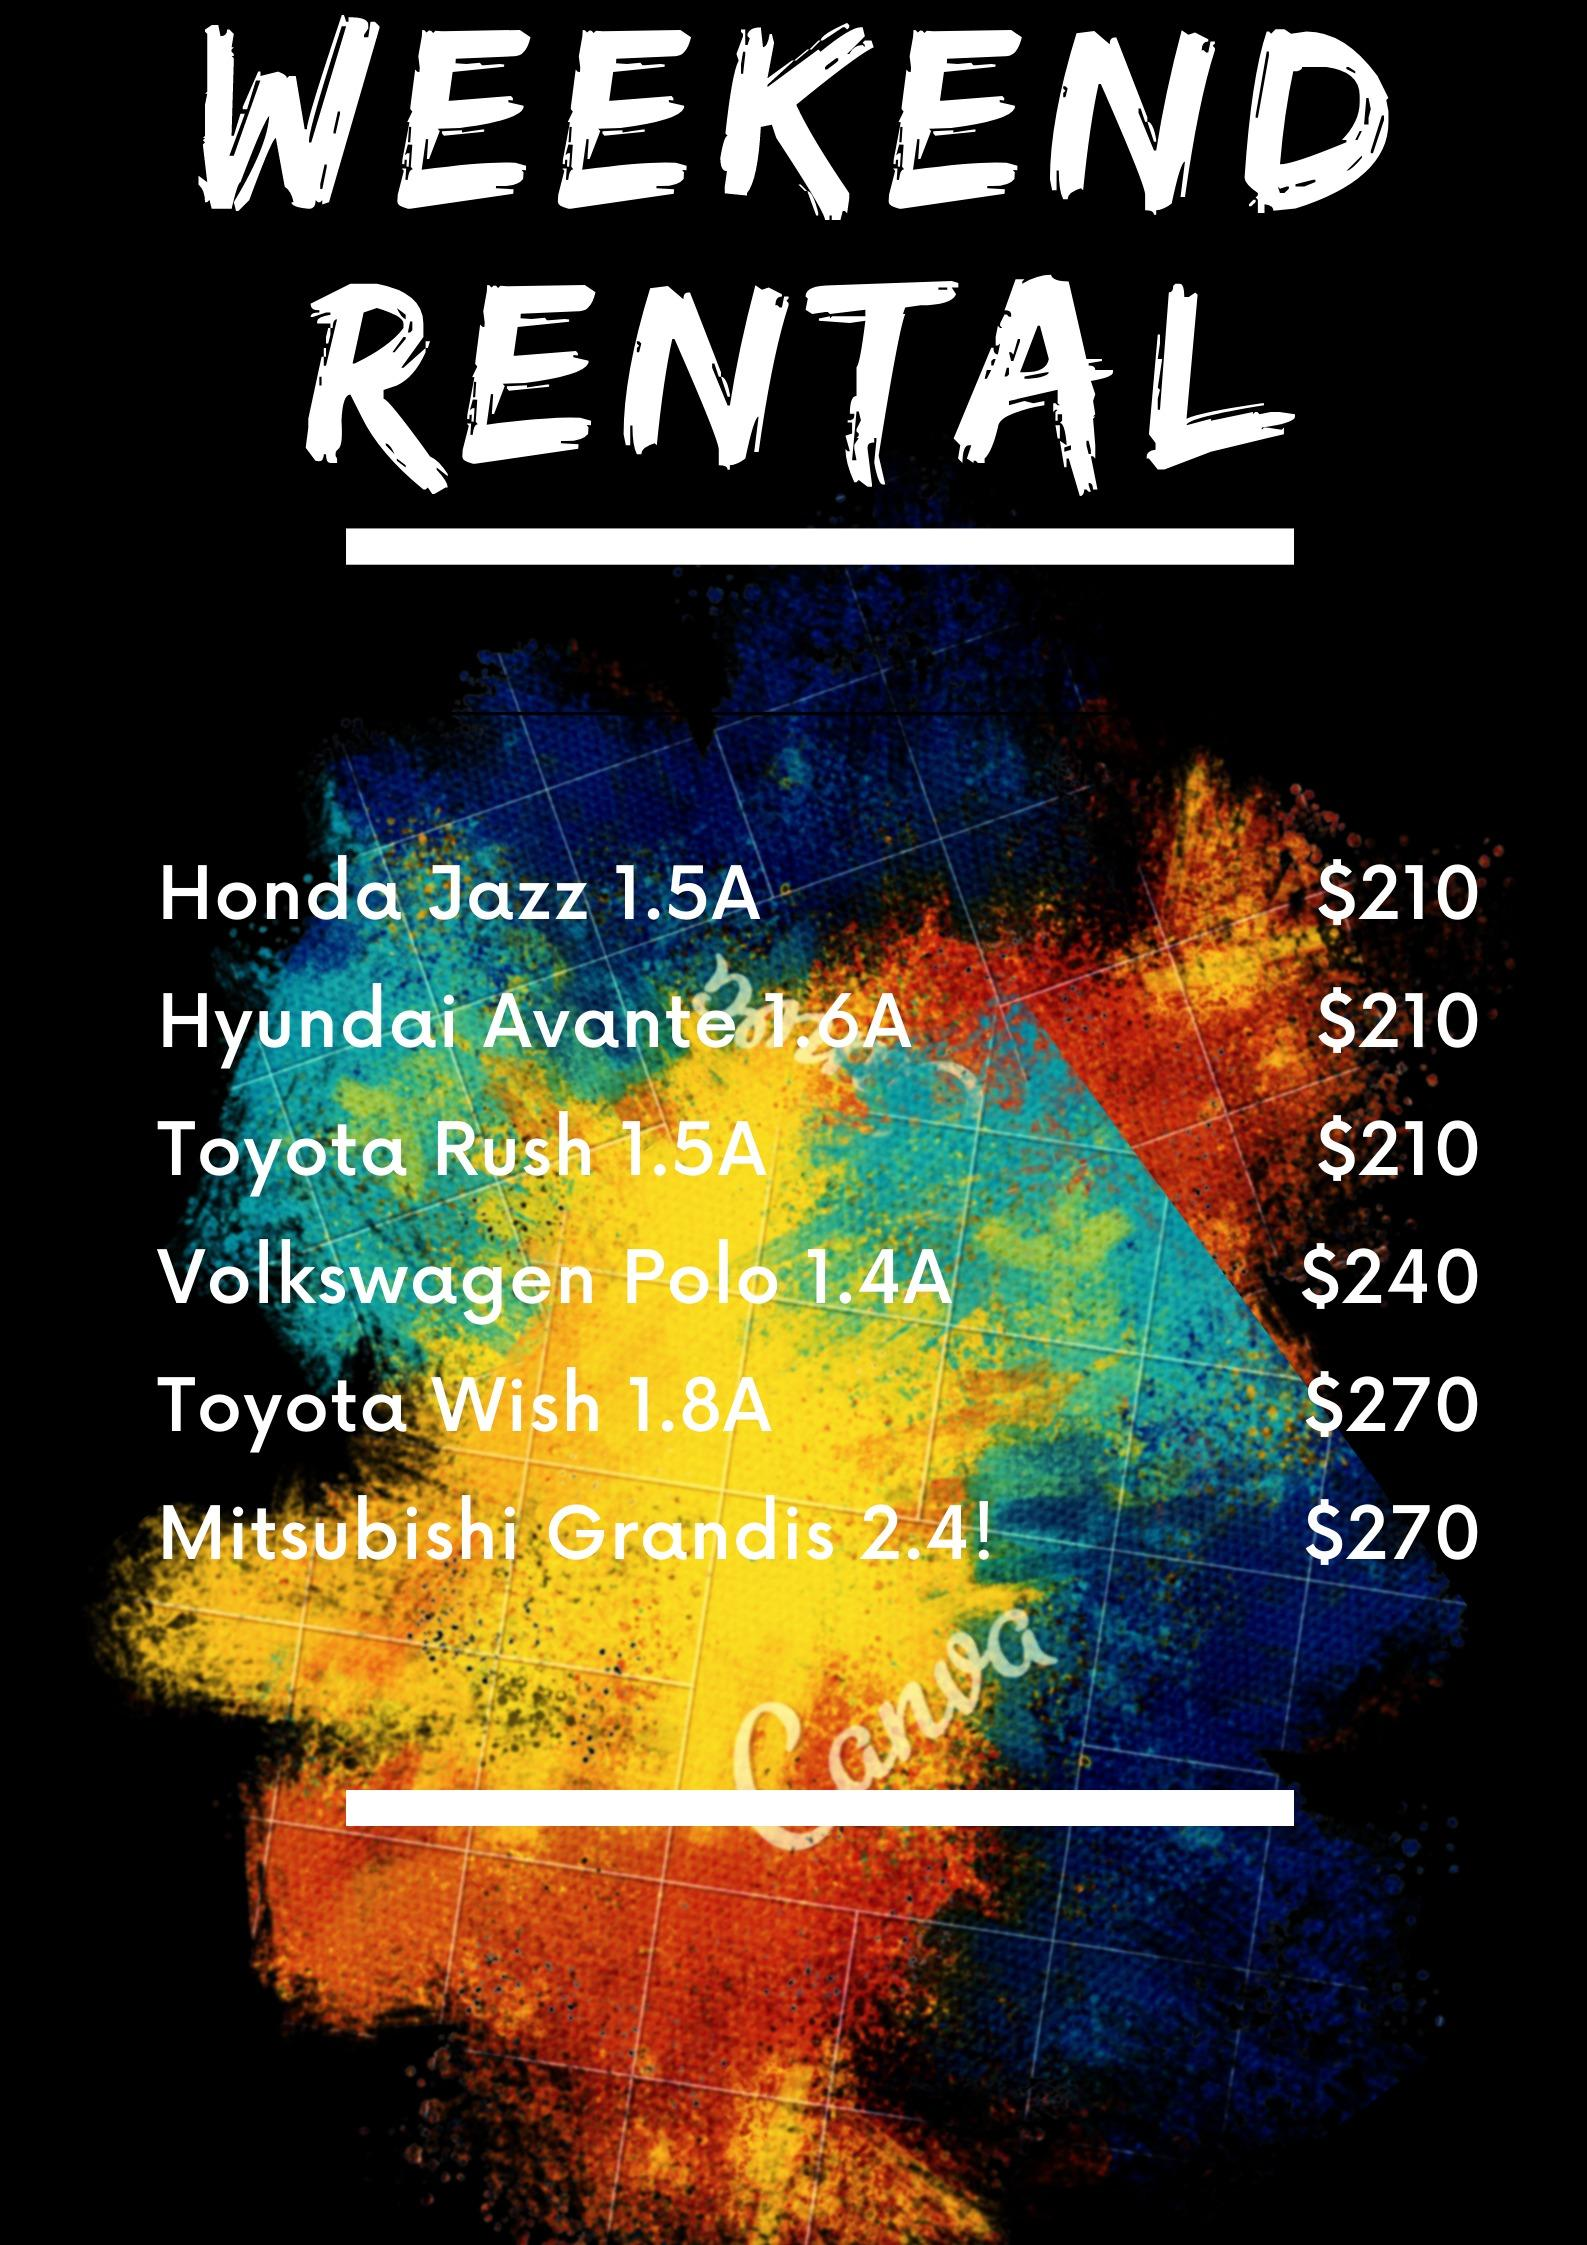 February Weekend Rental Cars of all shapes and sizes, colors